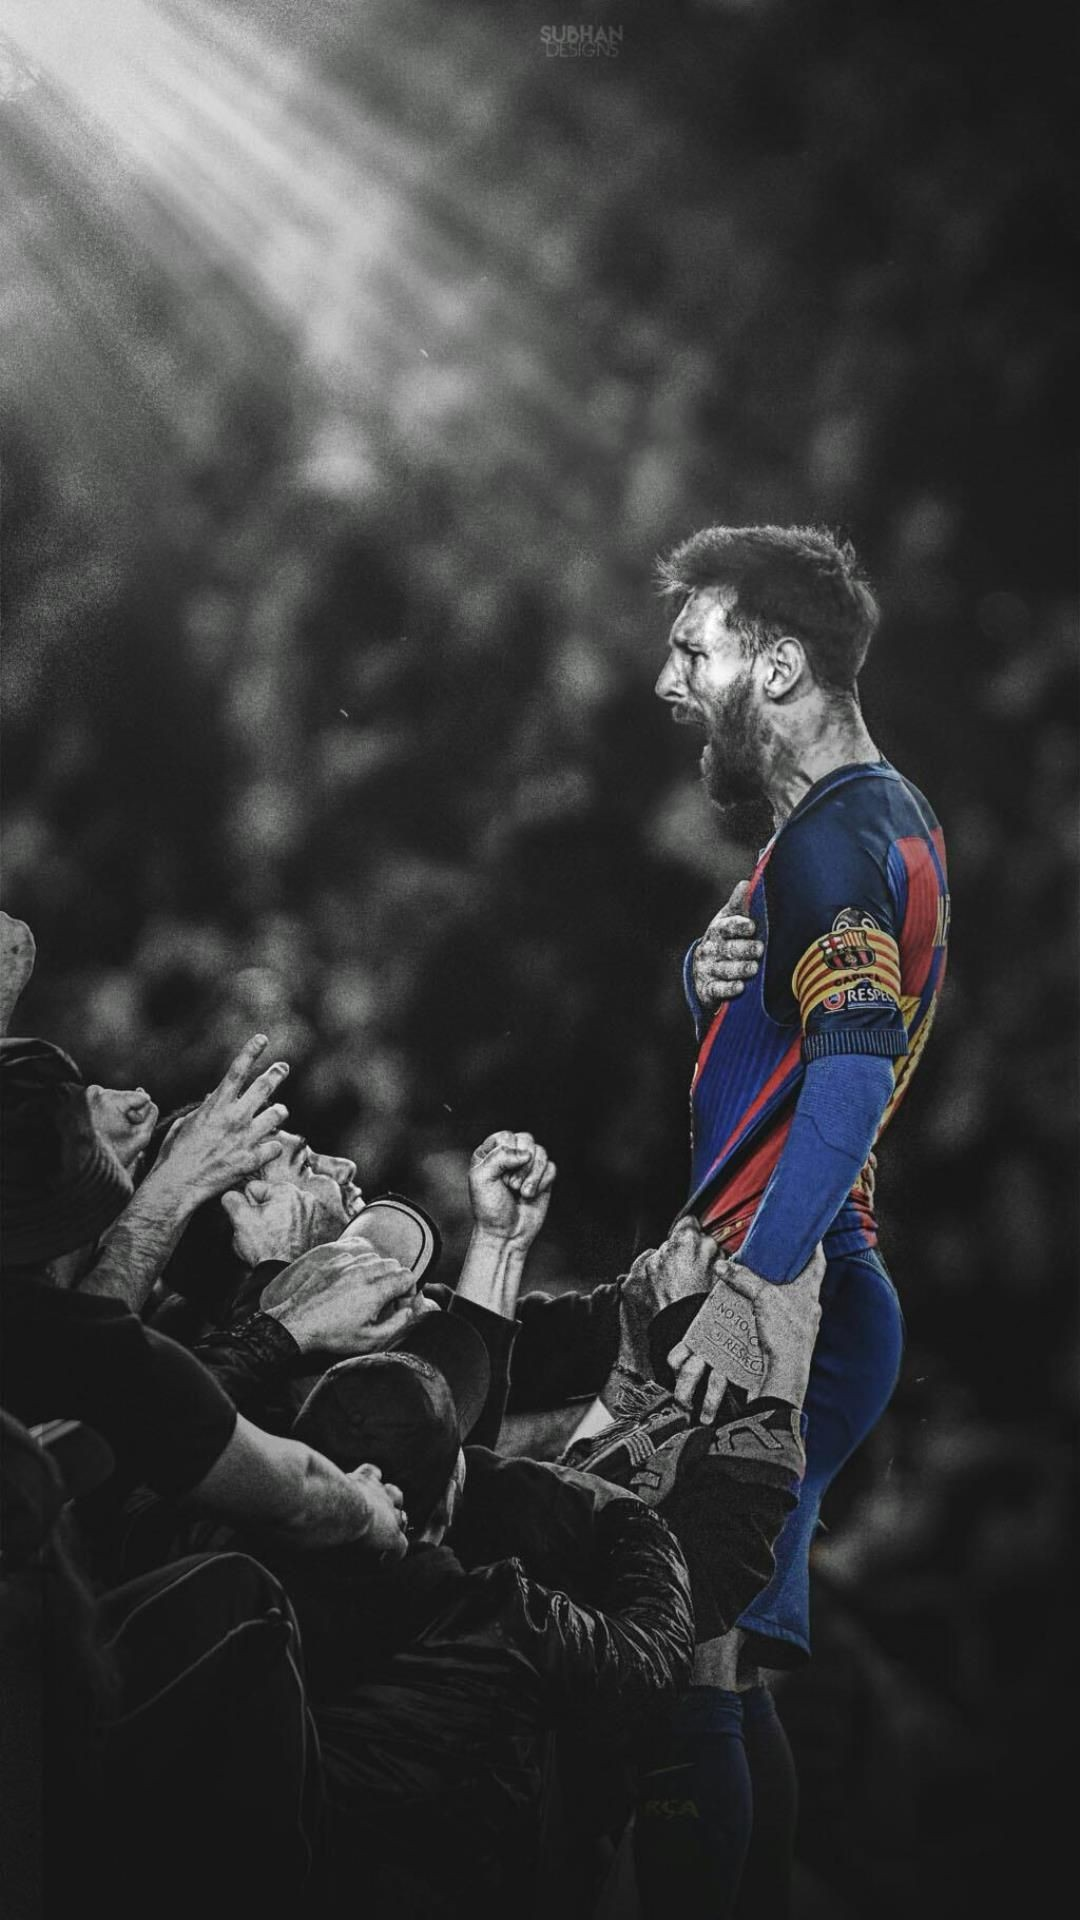 messi photos free download in hd